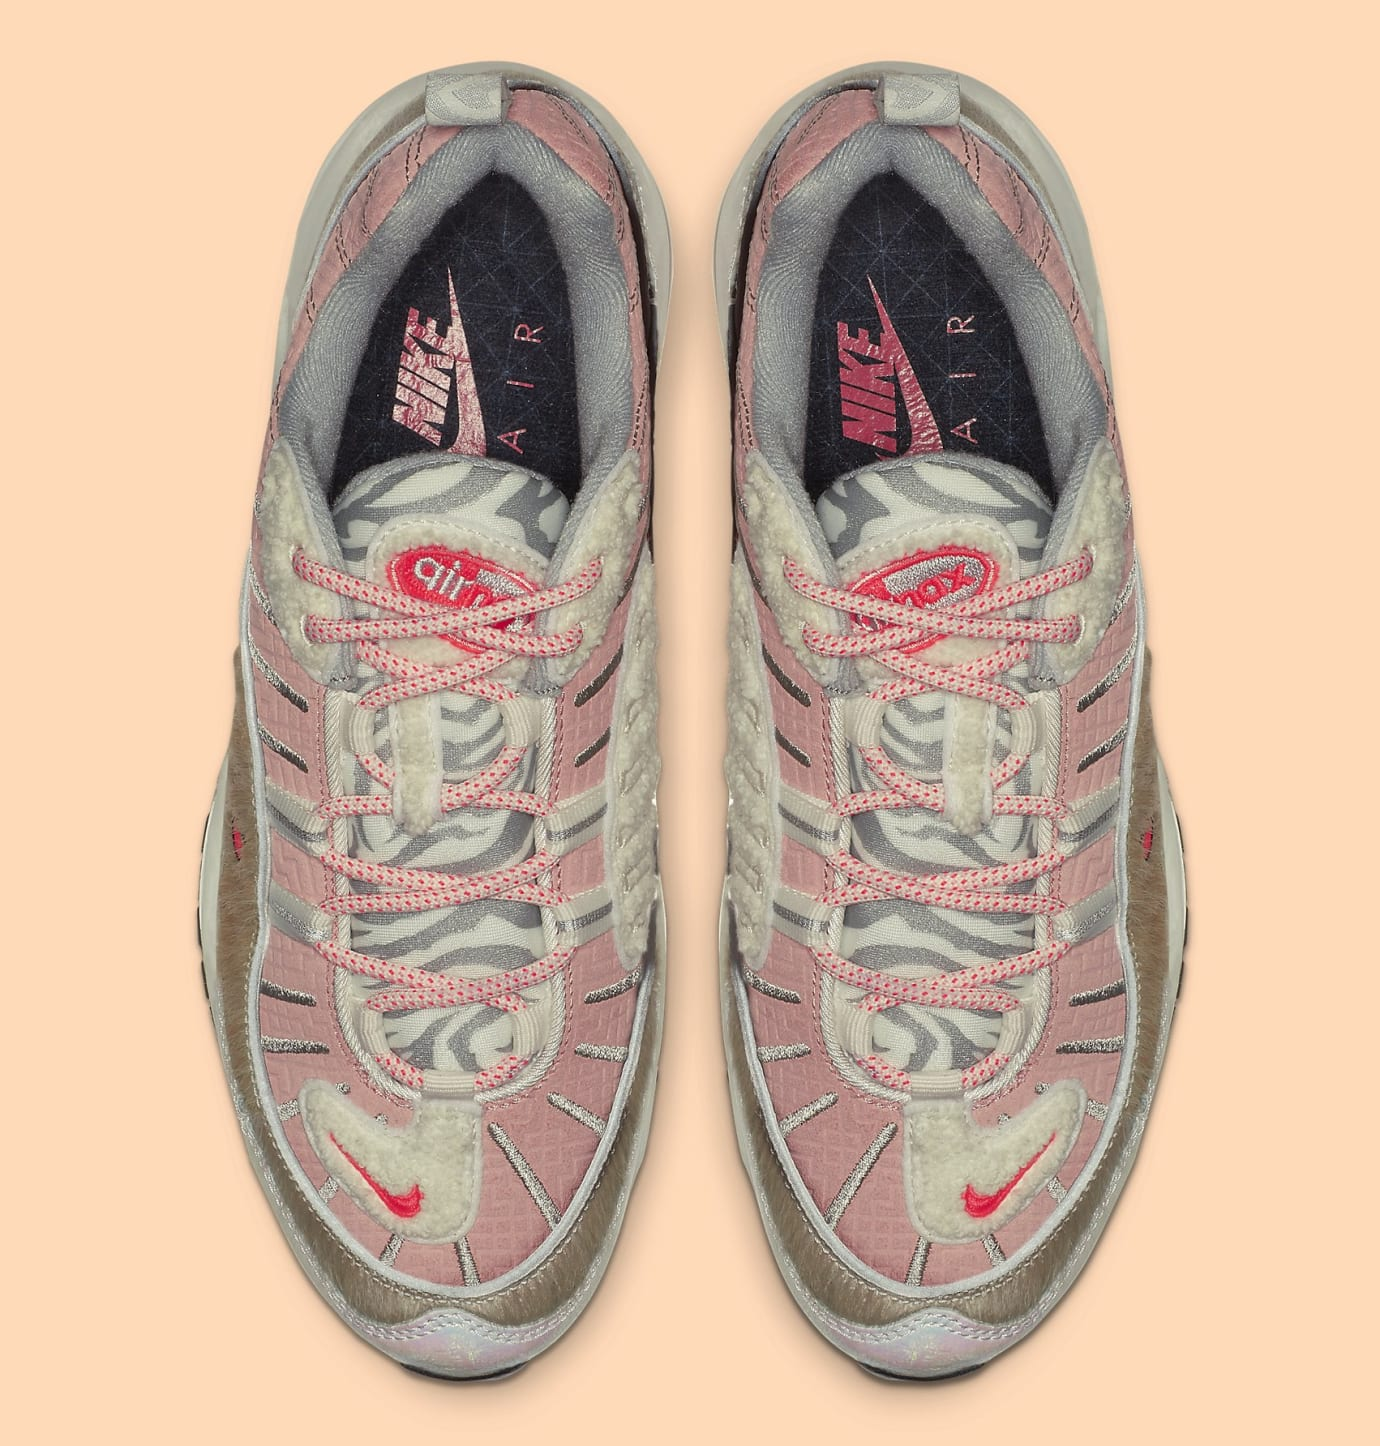 Image via Nike nike-air-max-98-womens-chinese-new-year- 63f45d225